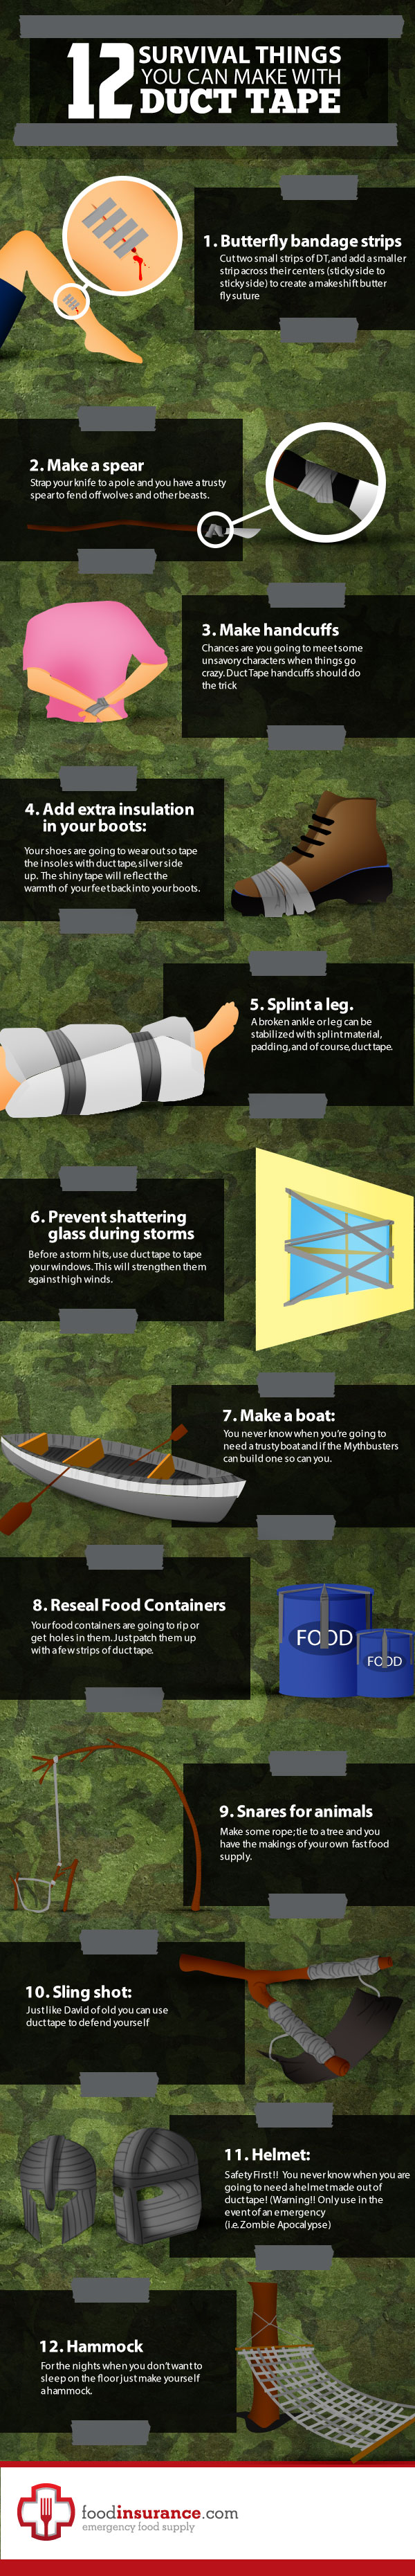 12-survival-things-you-can-make-with-duct-tape_5329aec907dc8